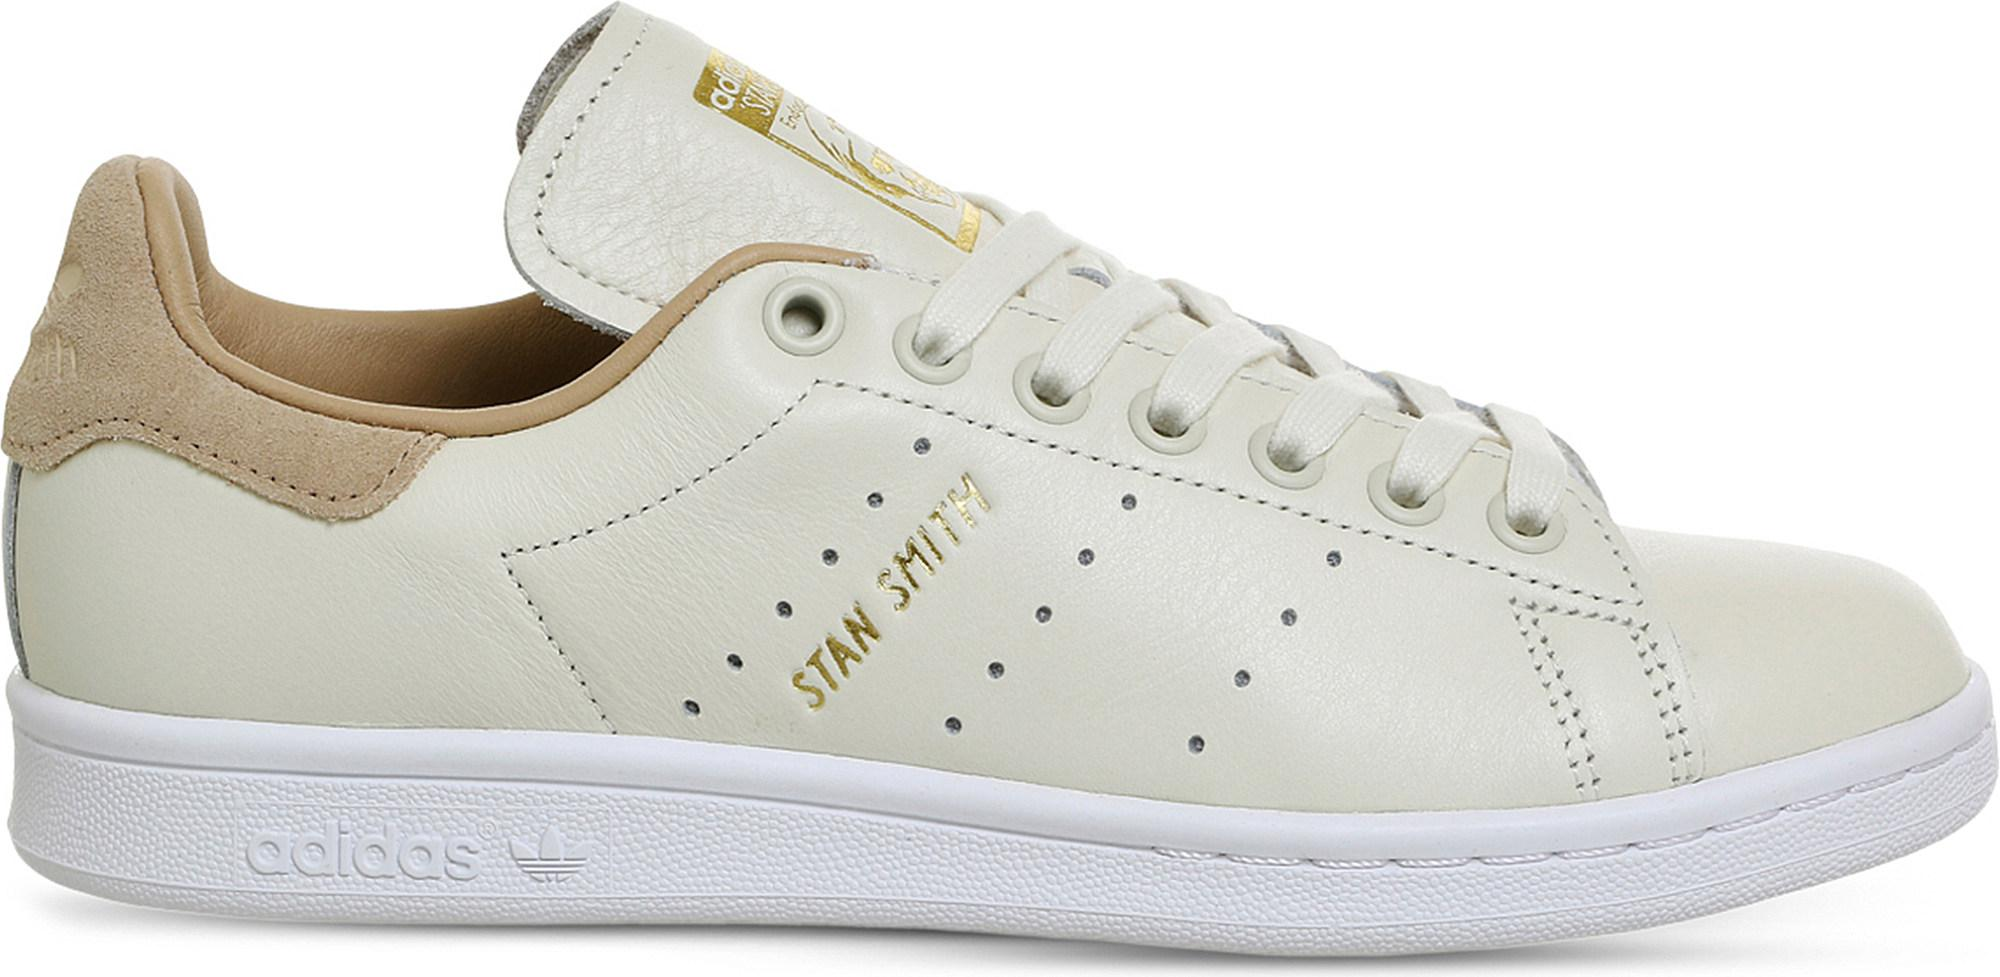 newest 8fe61 603df Lyst - adidas Originals Stan Smith Leather Trainers in White